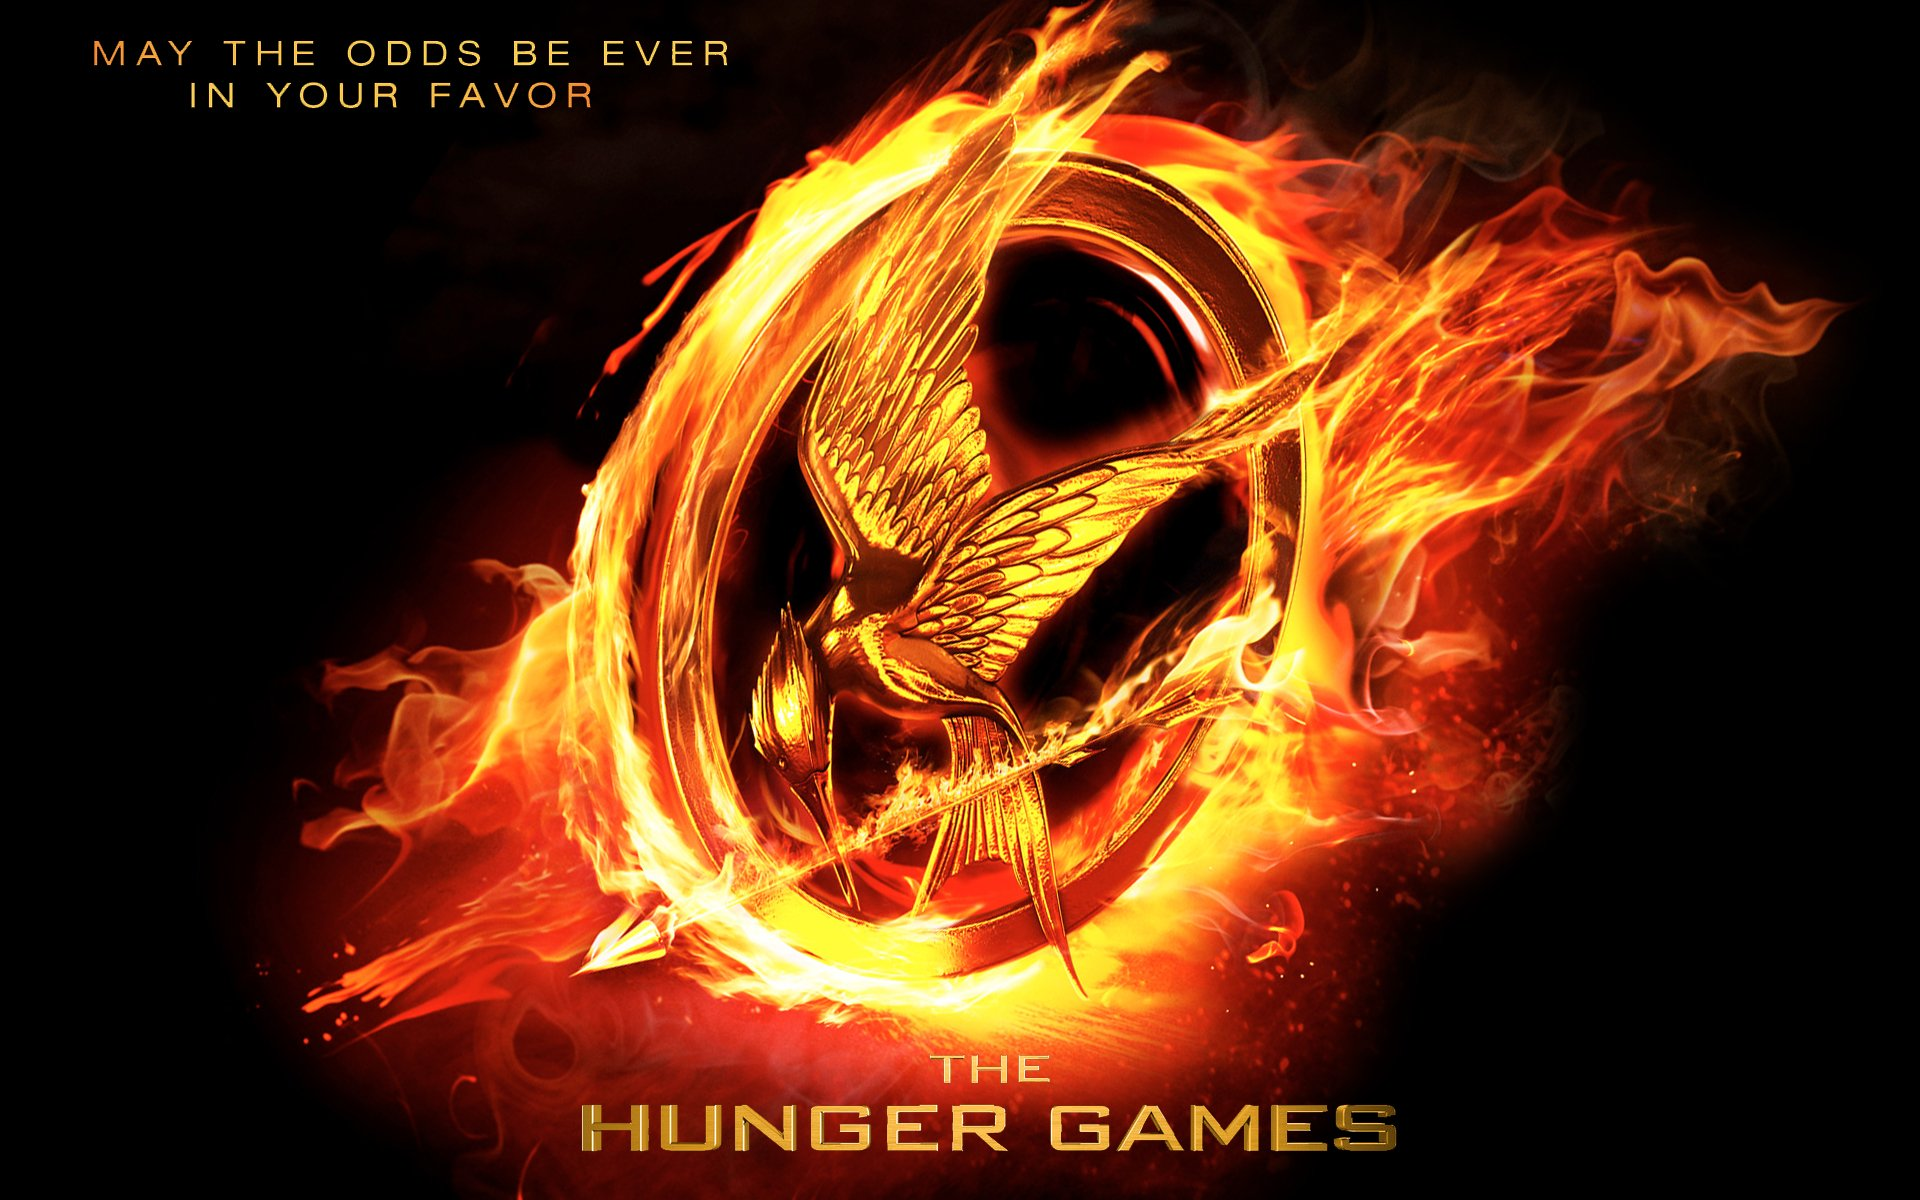 The Hunger Games Wallpapers 1920x1200 Movie Wallpapers 1920x1200